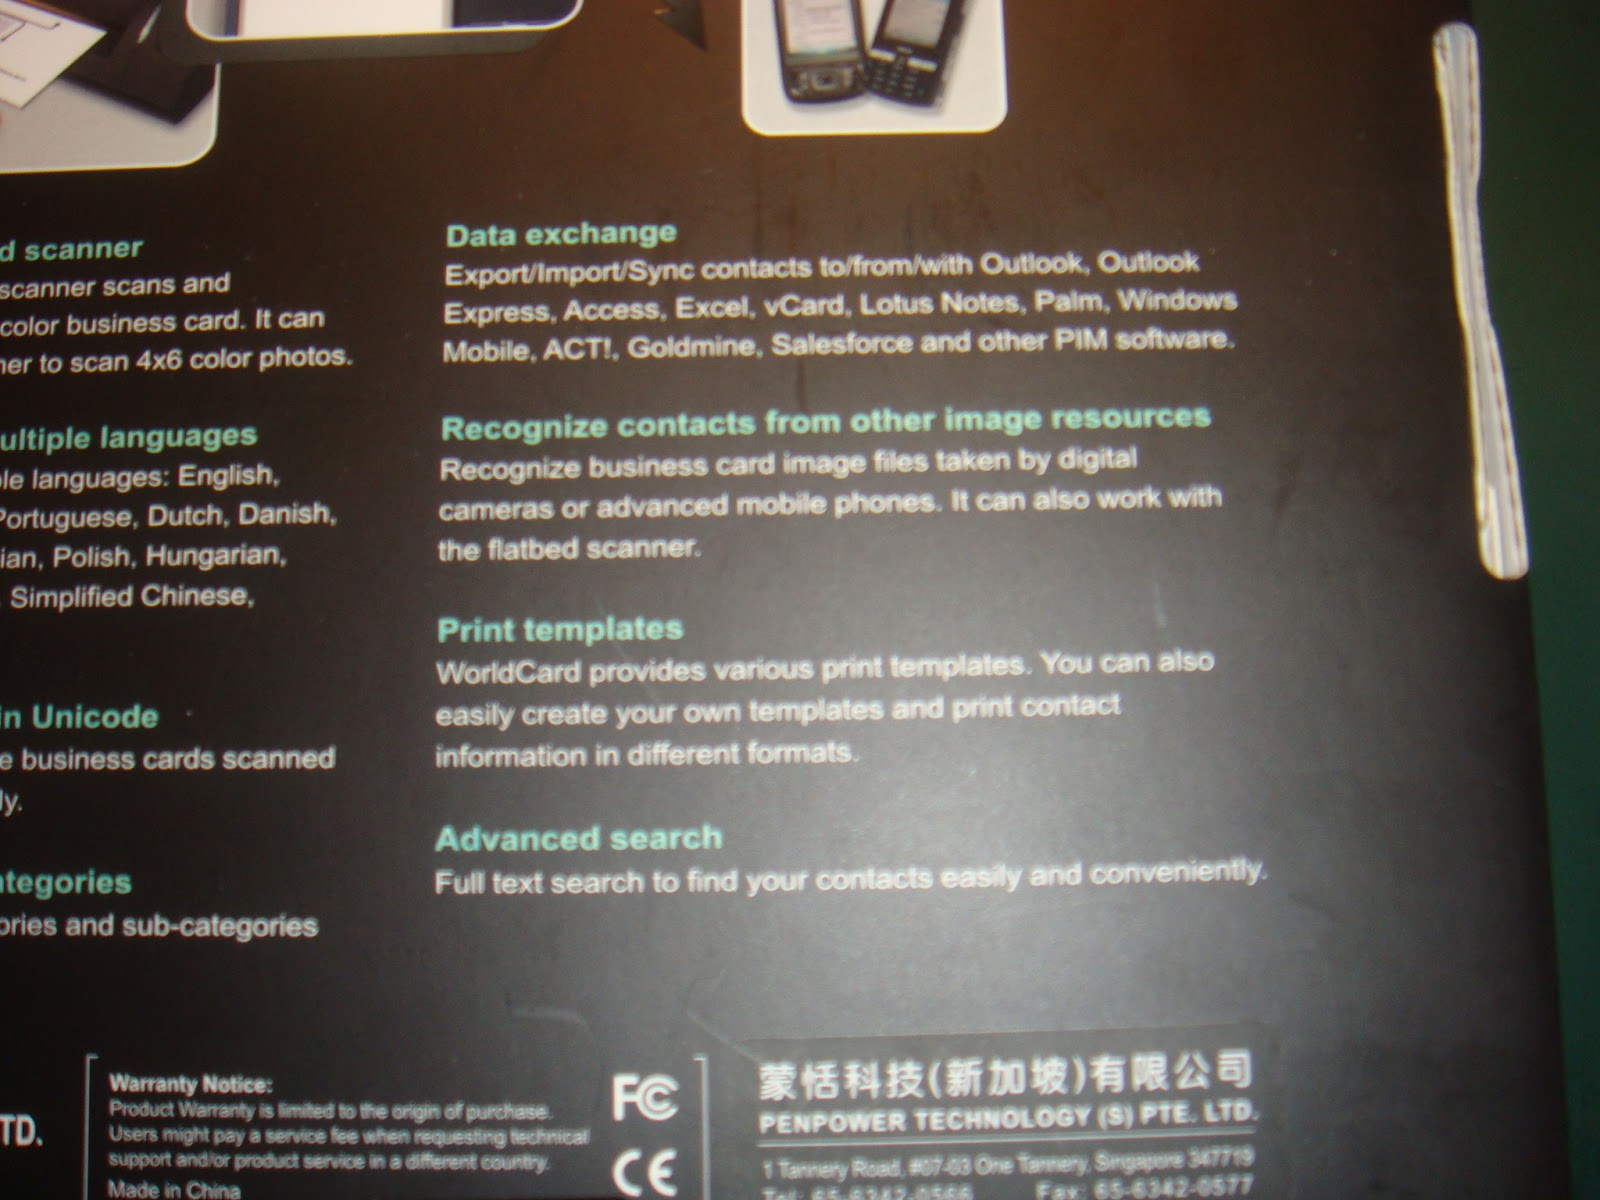 Pc parts and accessories penpower worldcard business card scanner according to the details i can do exactly that and it supports multiple pim reheart Images